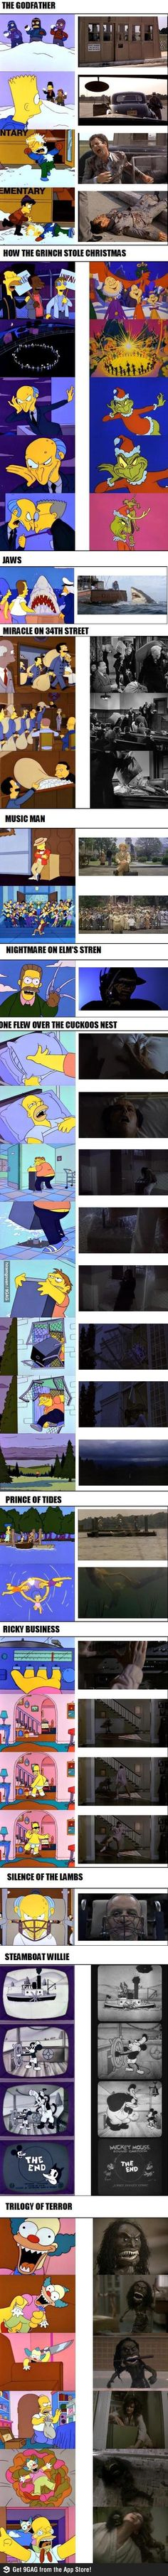 The simpsons movie parodies (are f**king cool) Pt. 2